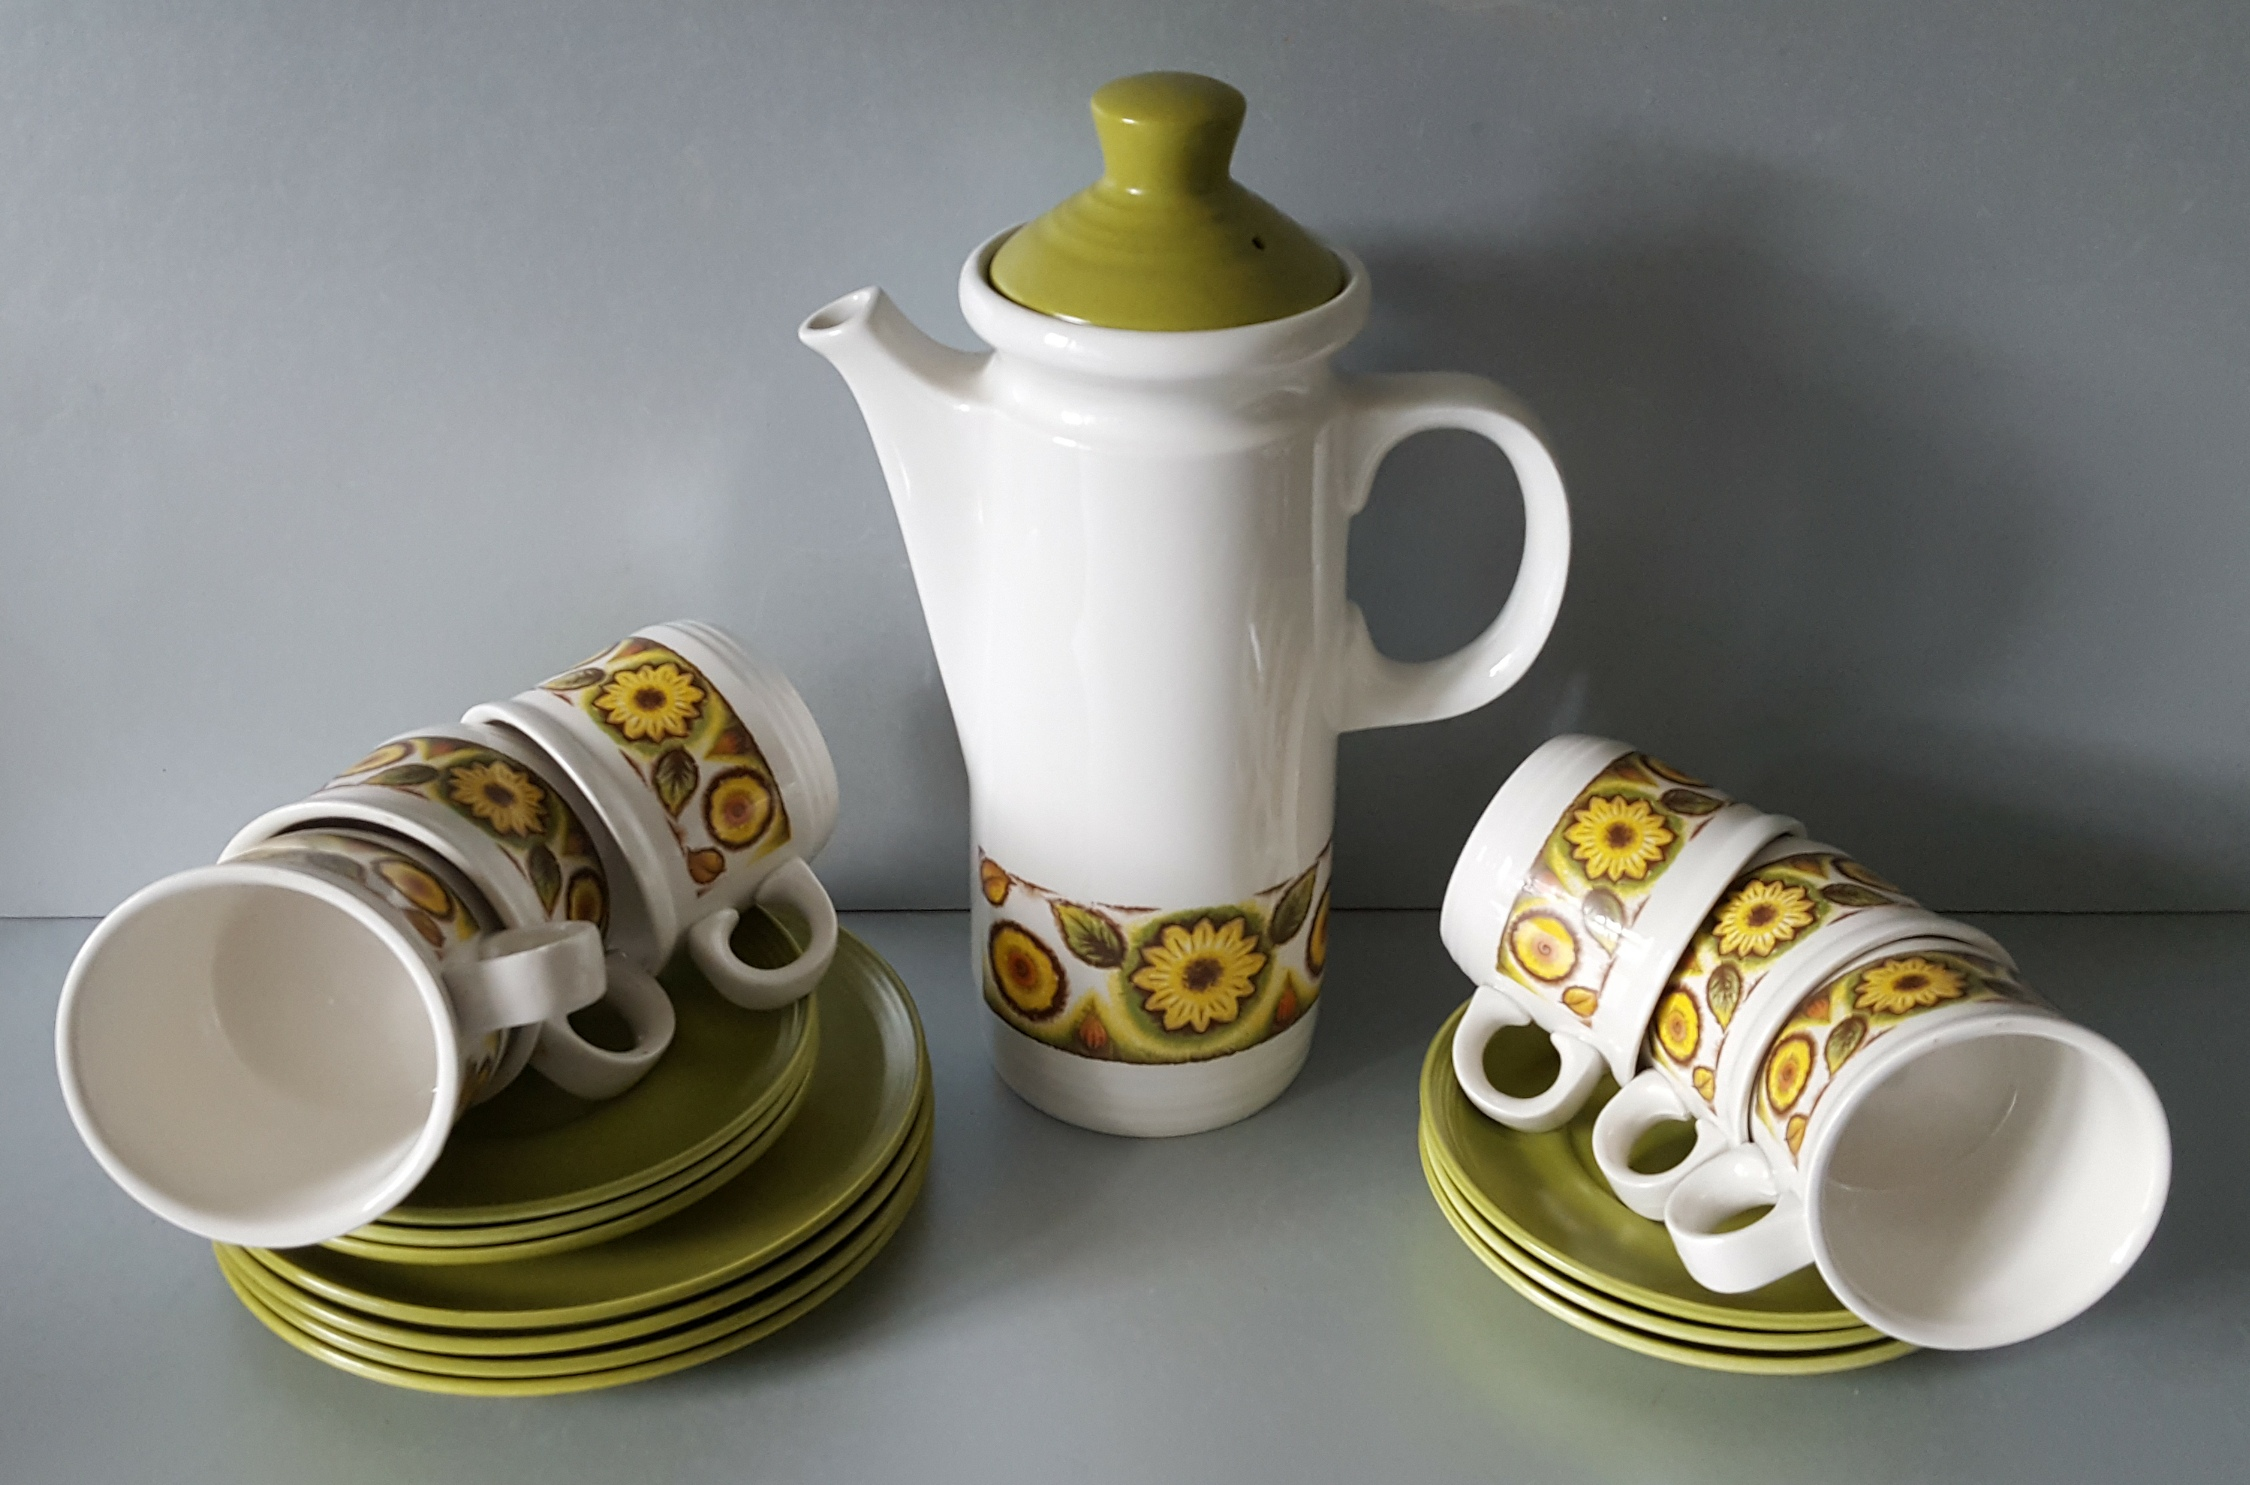 Lot 48 - Vintage Retro Myott 'Mardigras' Coffee Pot Cups, Plates & Part Dinner Service (40 items)